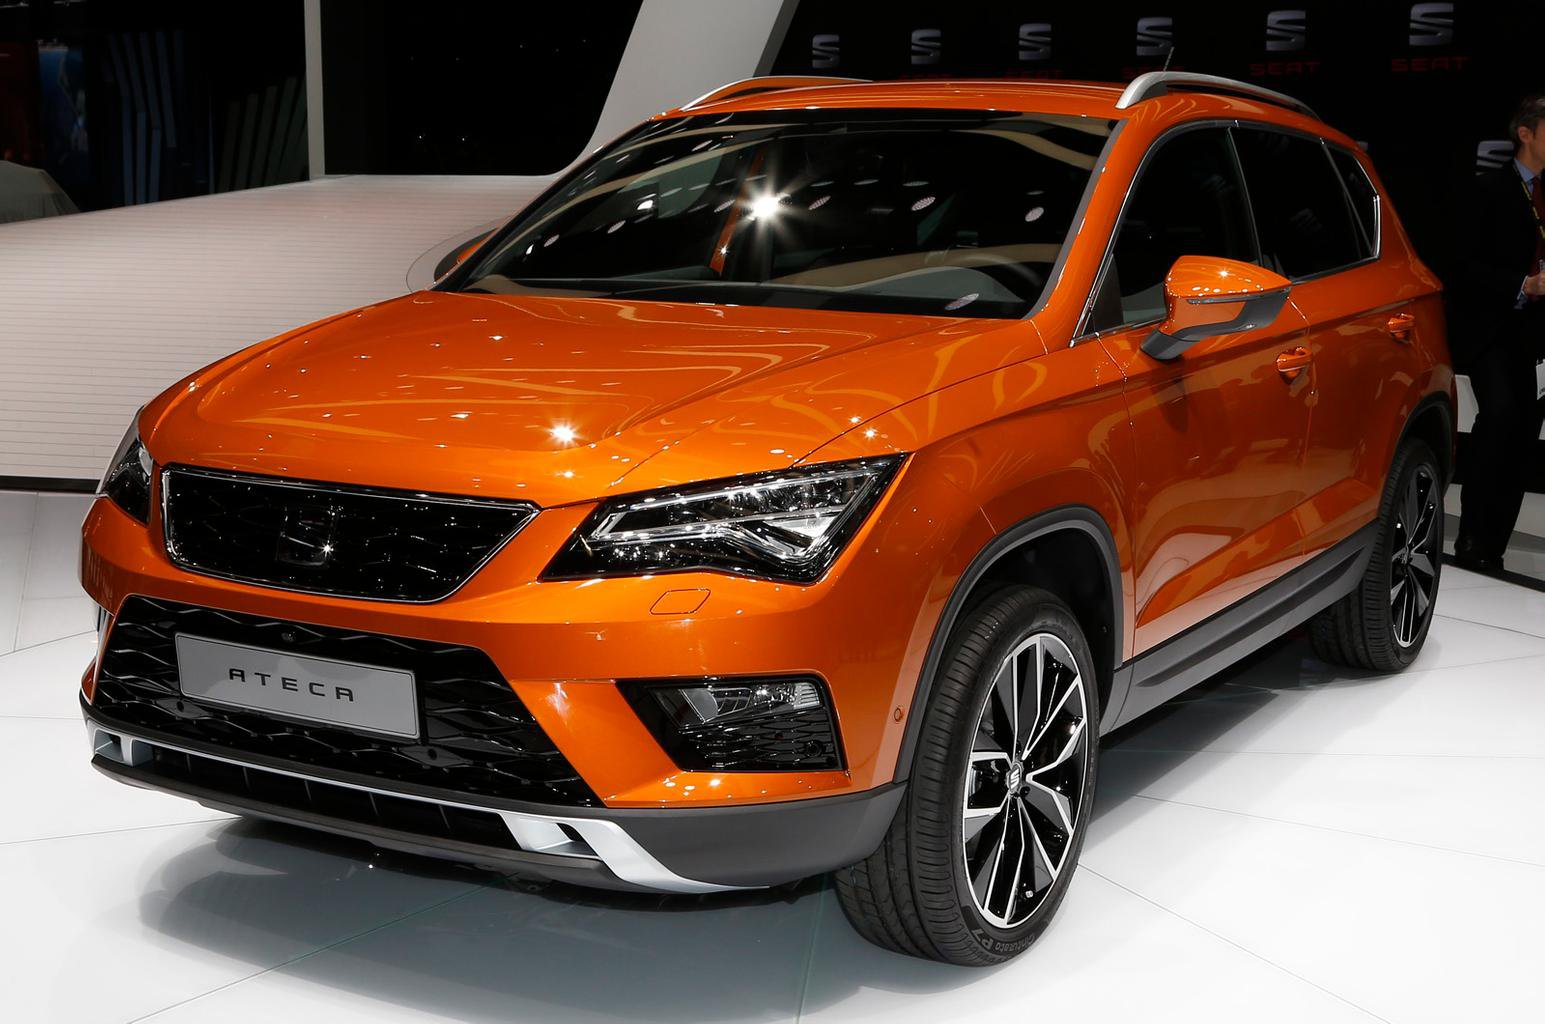 Promoted: SEAT Ateca - your chance to shape the first UK edition